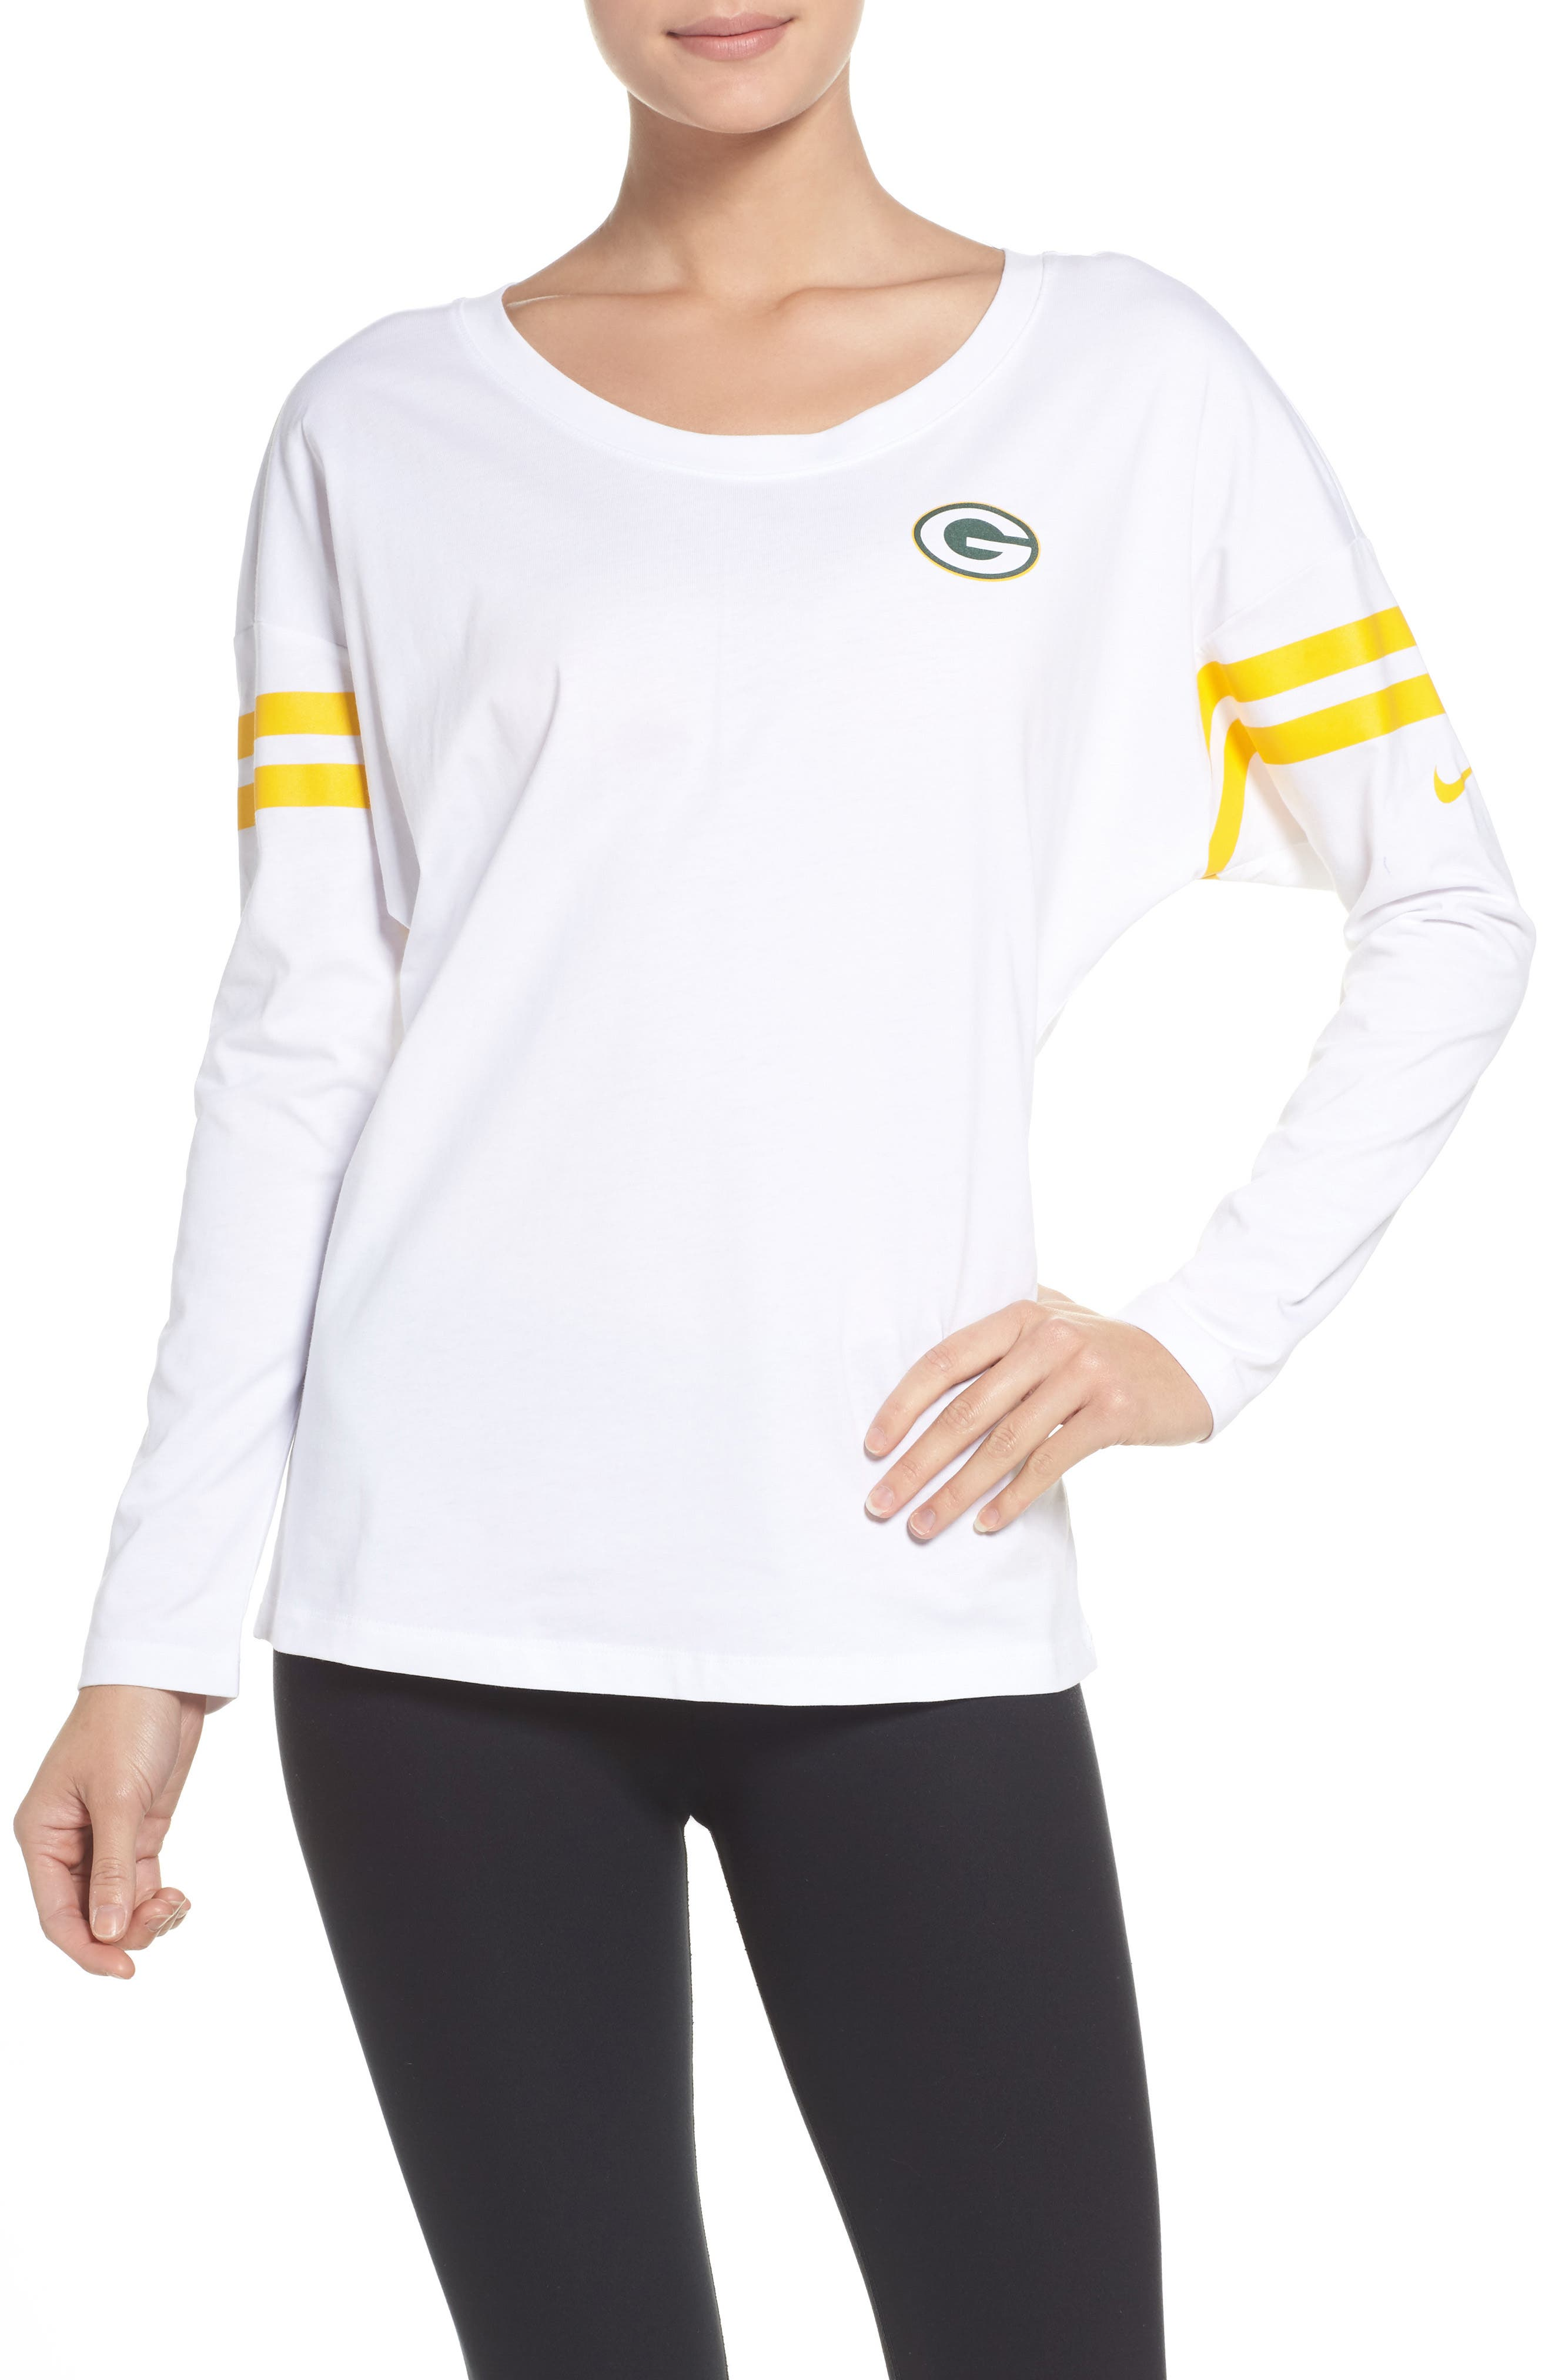 NFL Tailgate Tee,                             Main thumbnail 1, color,                             White/ Green Bay